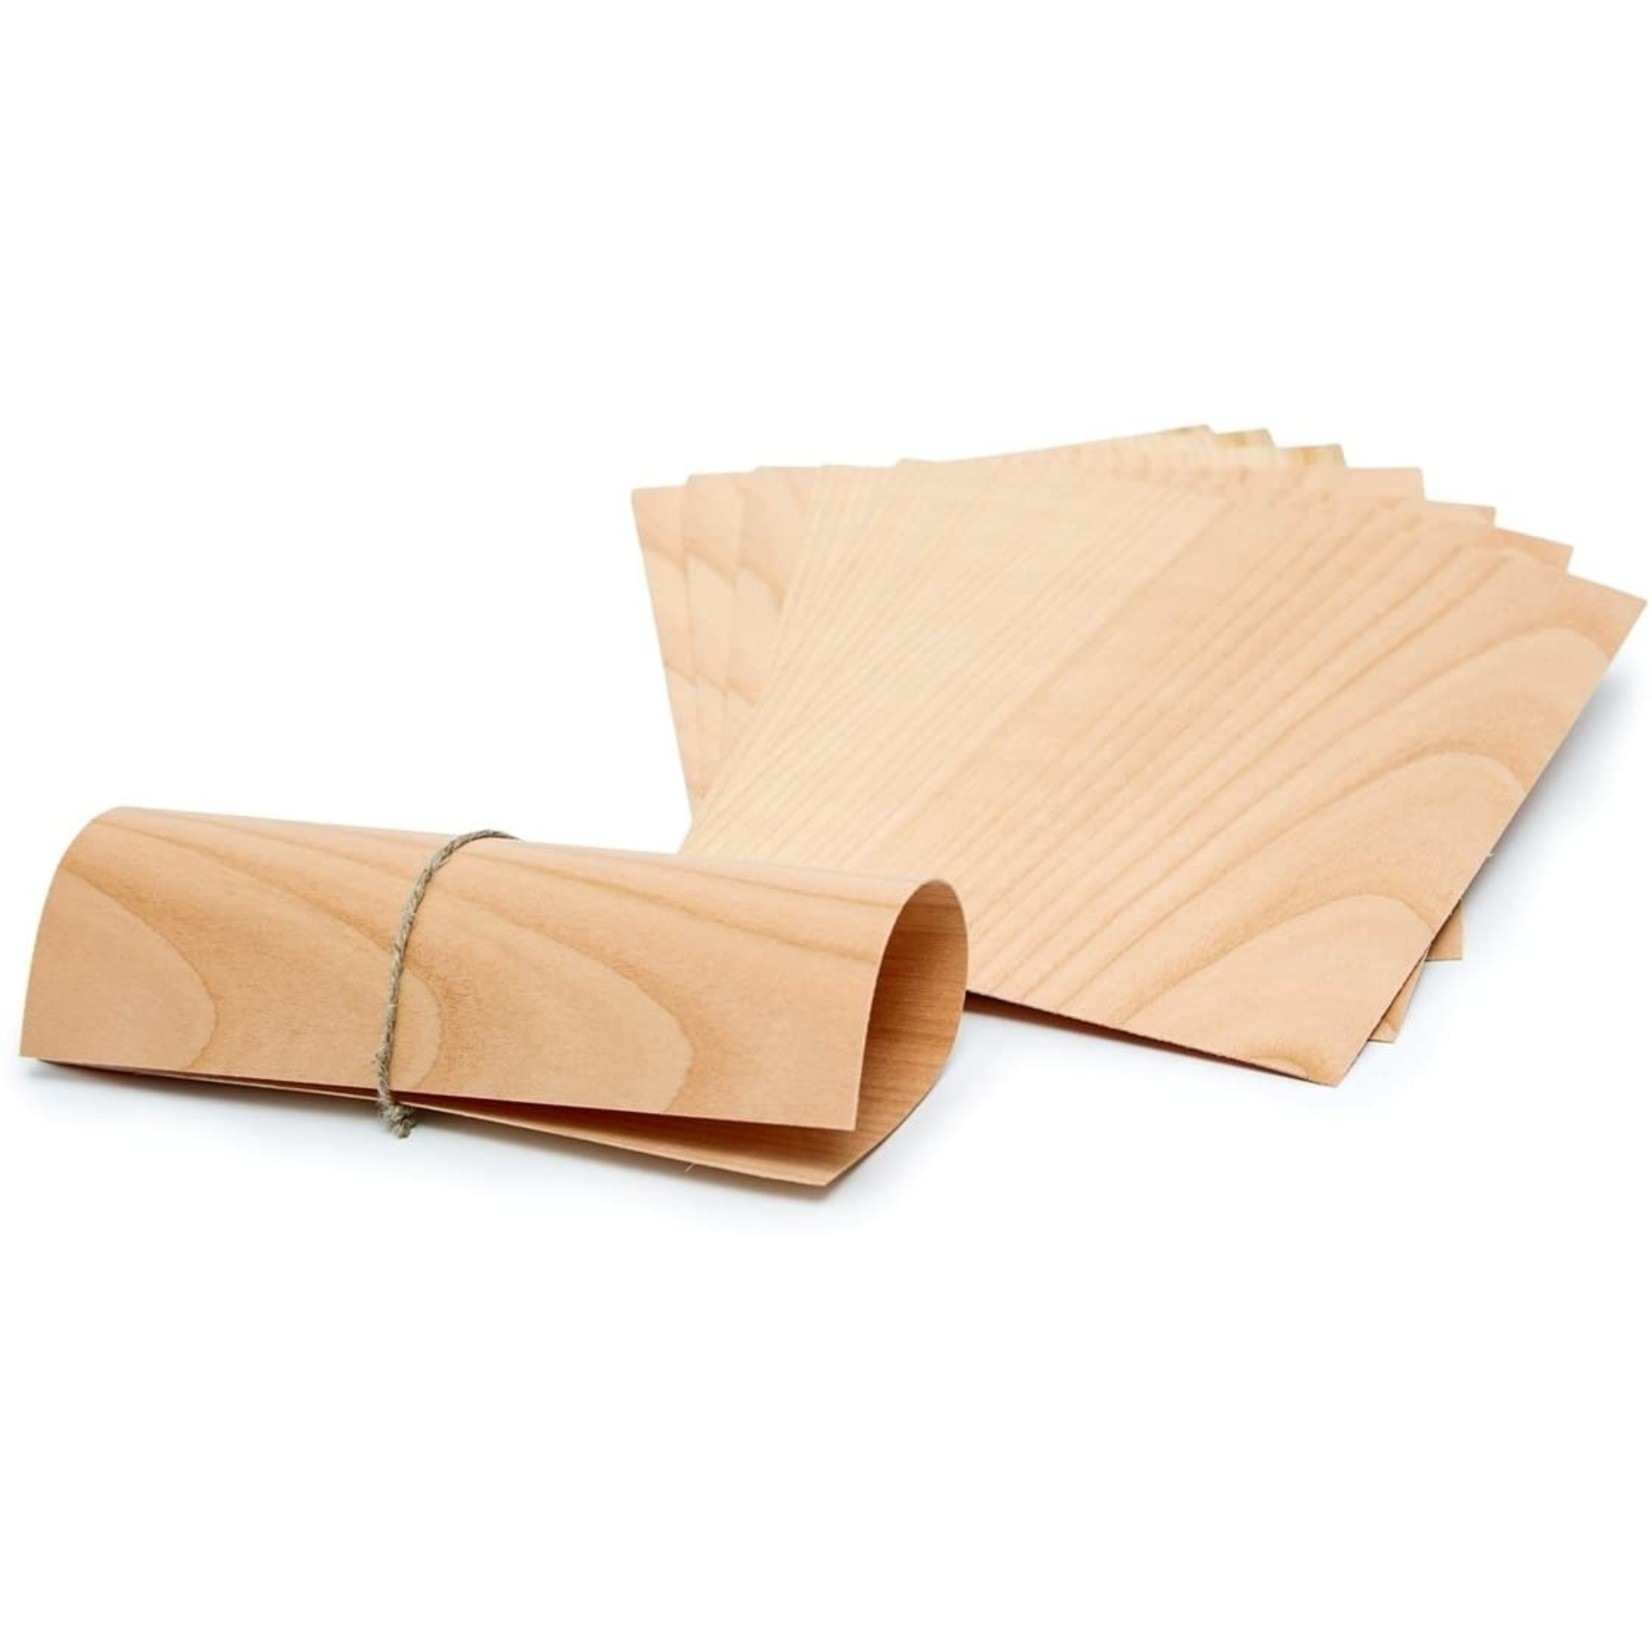 Axtschlag Axtschlag wood bbq papers Hickory Wood